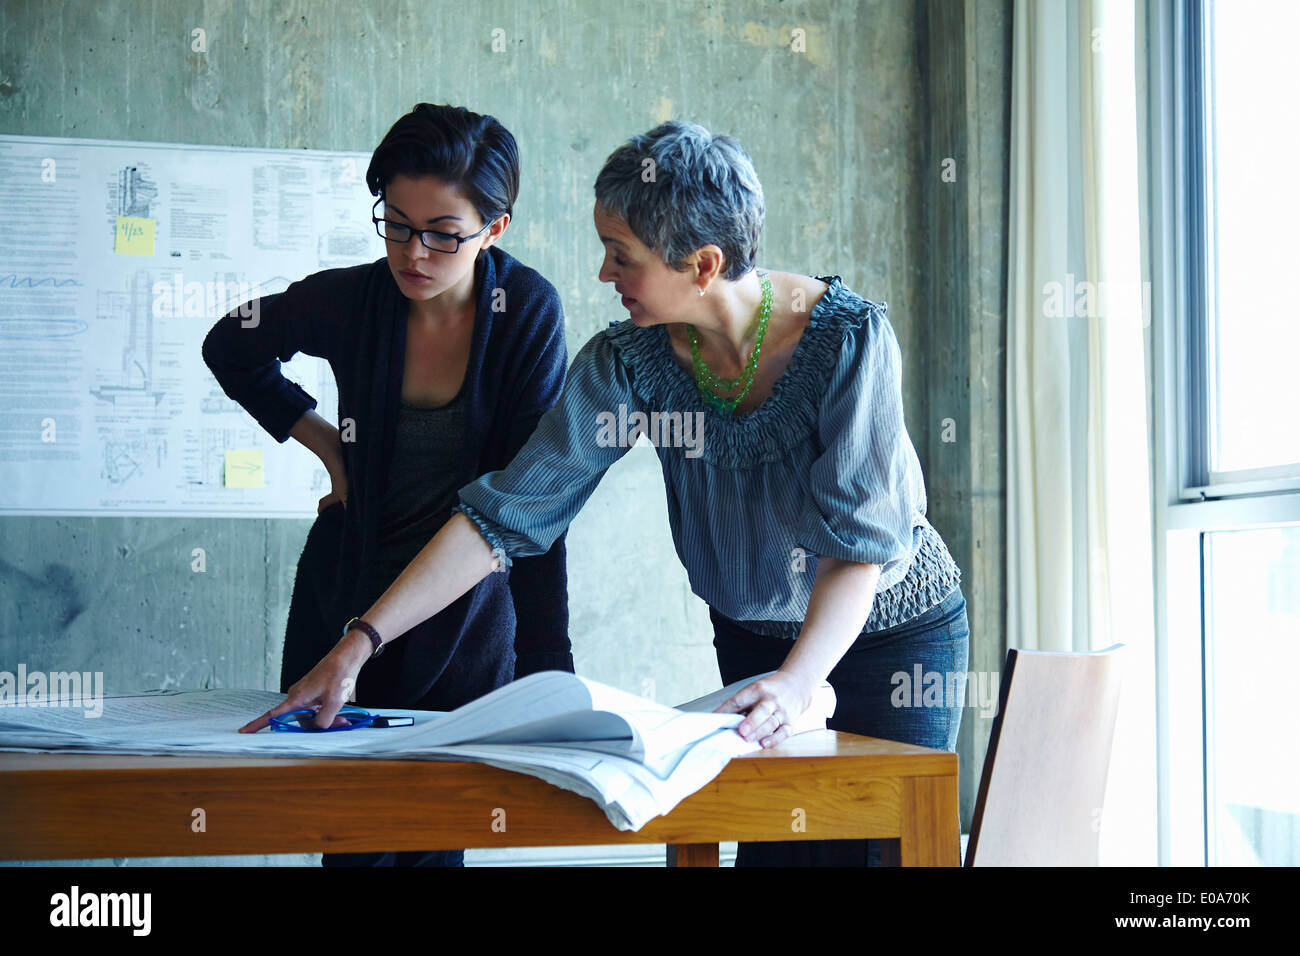 Two businesswomen studying blueprints in office - Stock Image